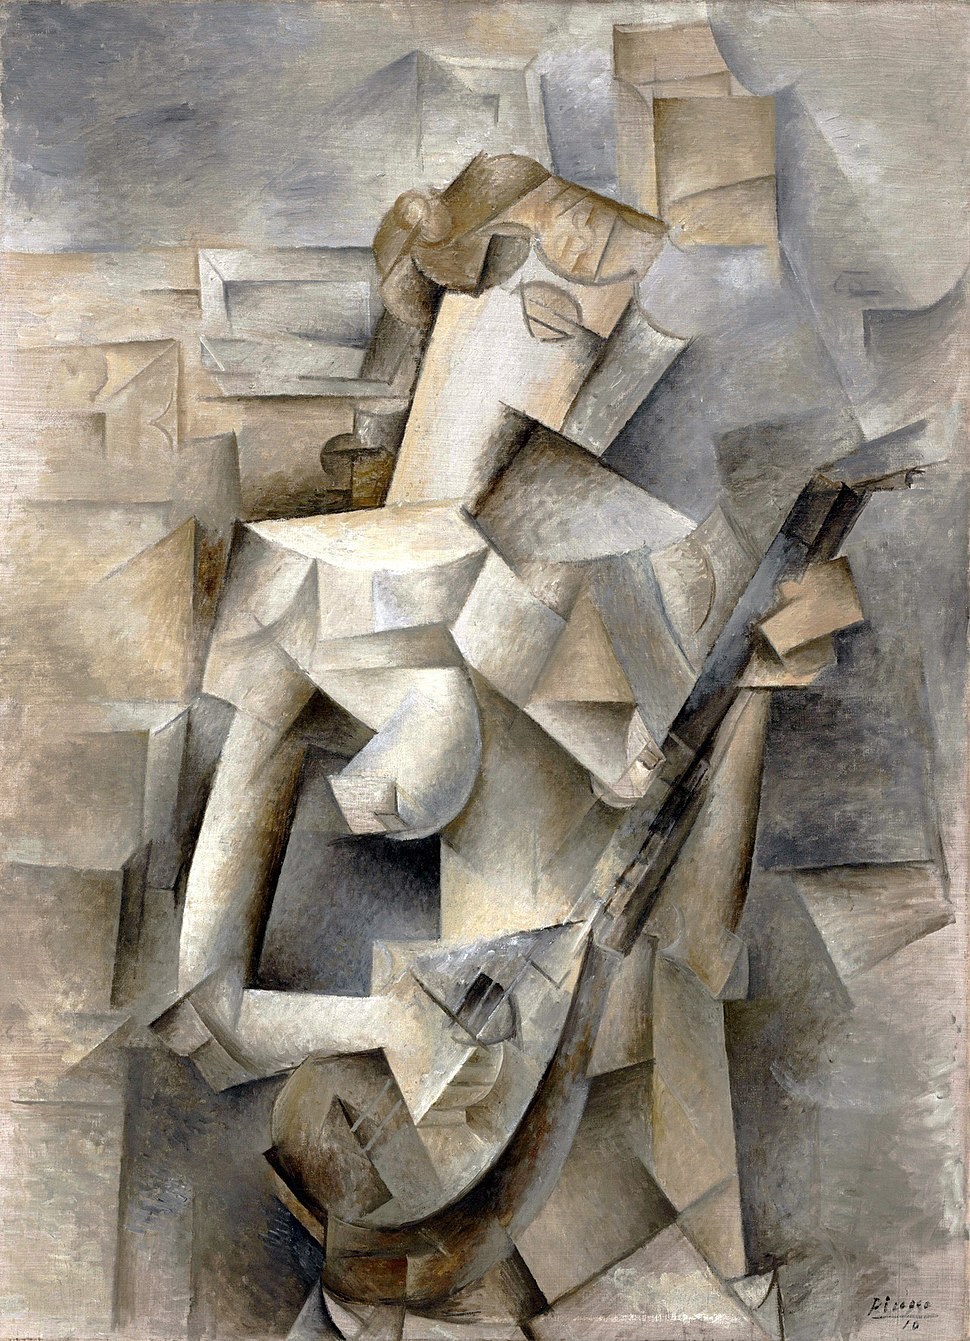 Pablo Picasso, 1910, Girl with a Mandolin (Fanny Tellier), oil on canvas, 100.3 x 73.6 cm, Museum of Modern Art New York.